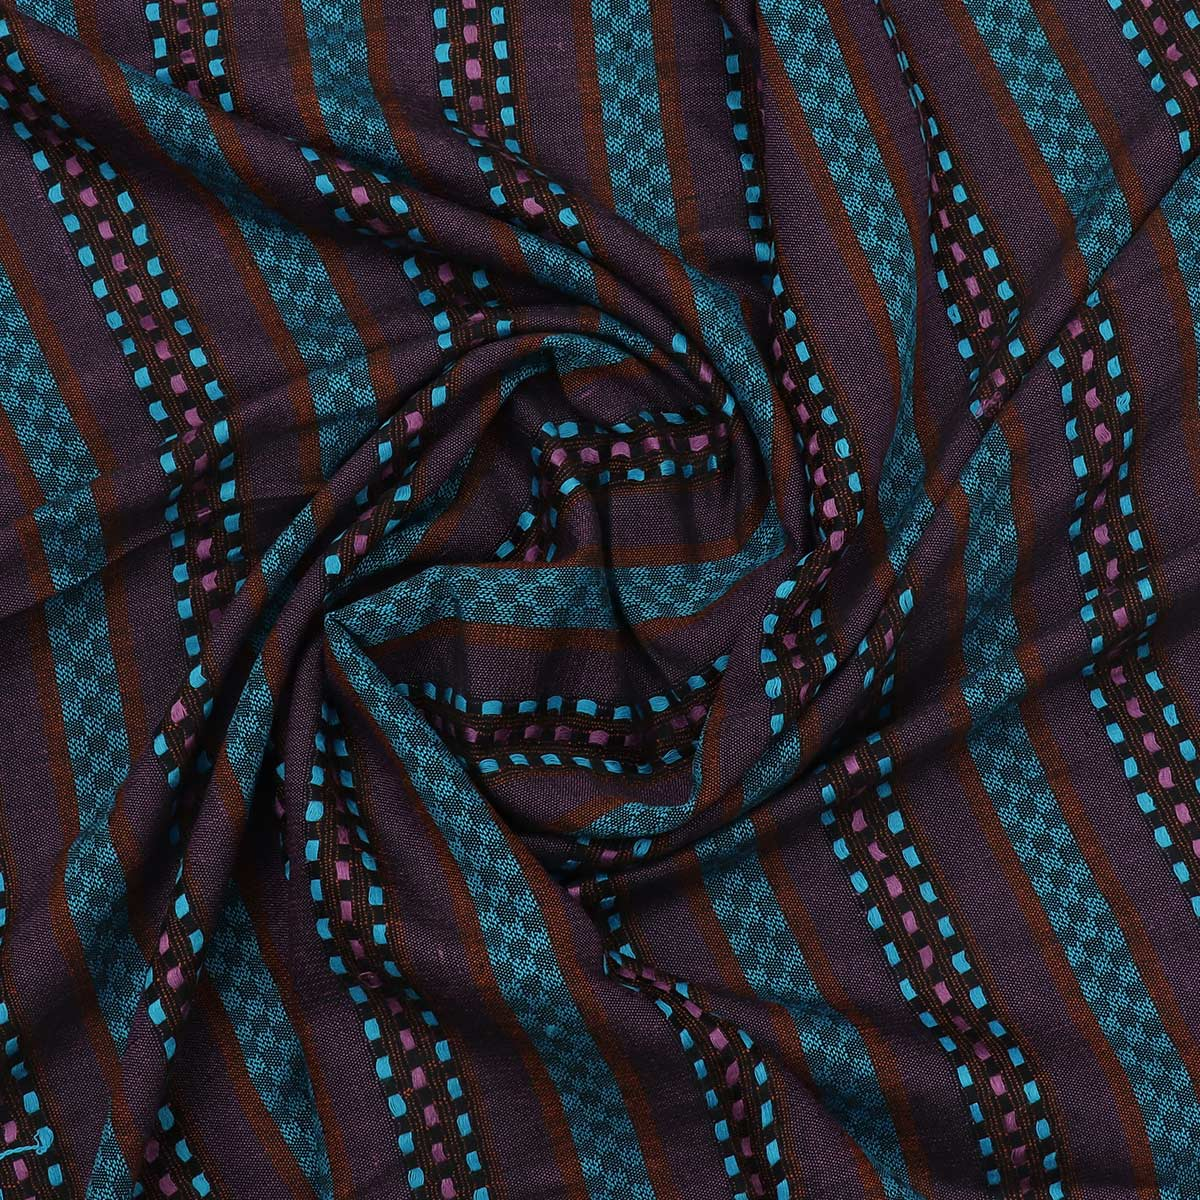 Semi Pashmina Stole Blue and Brown with Lines